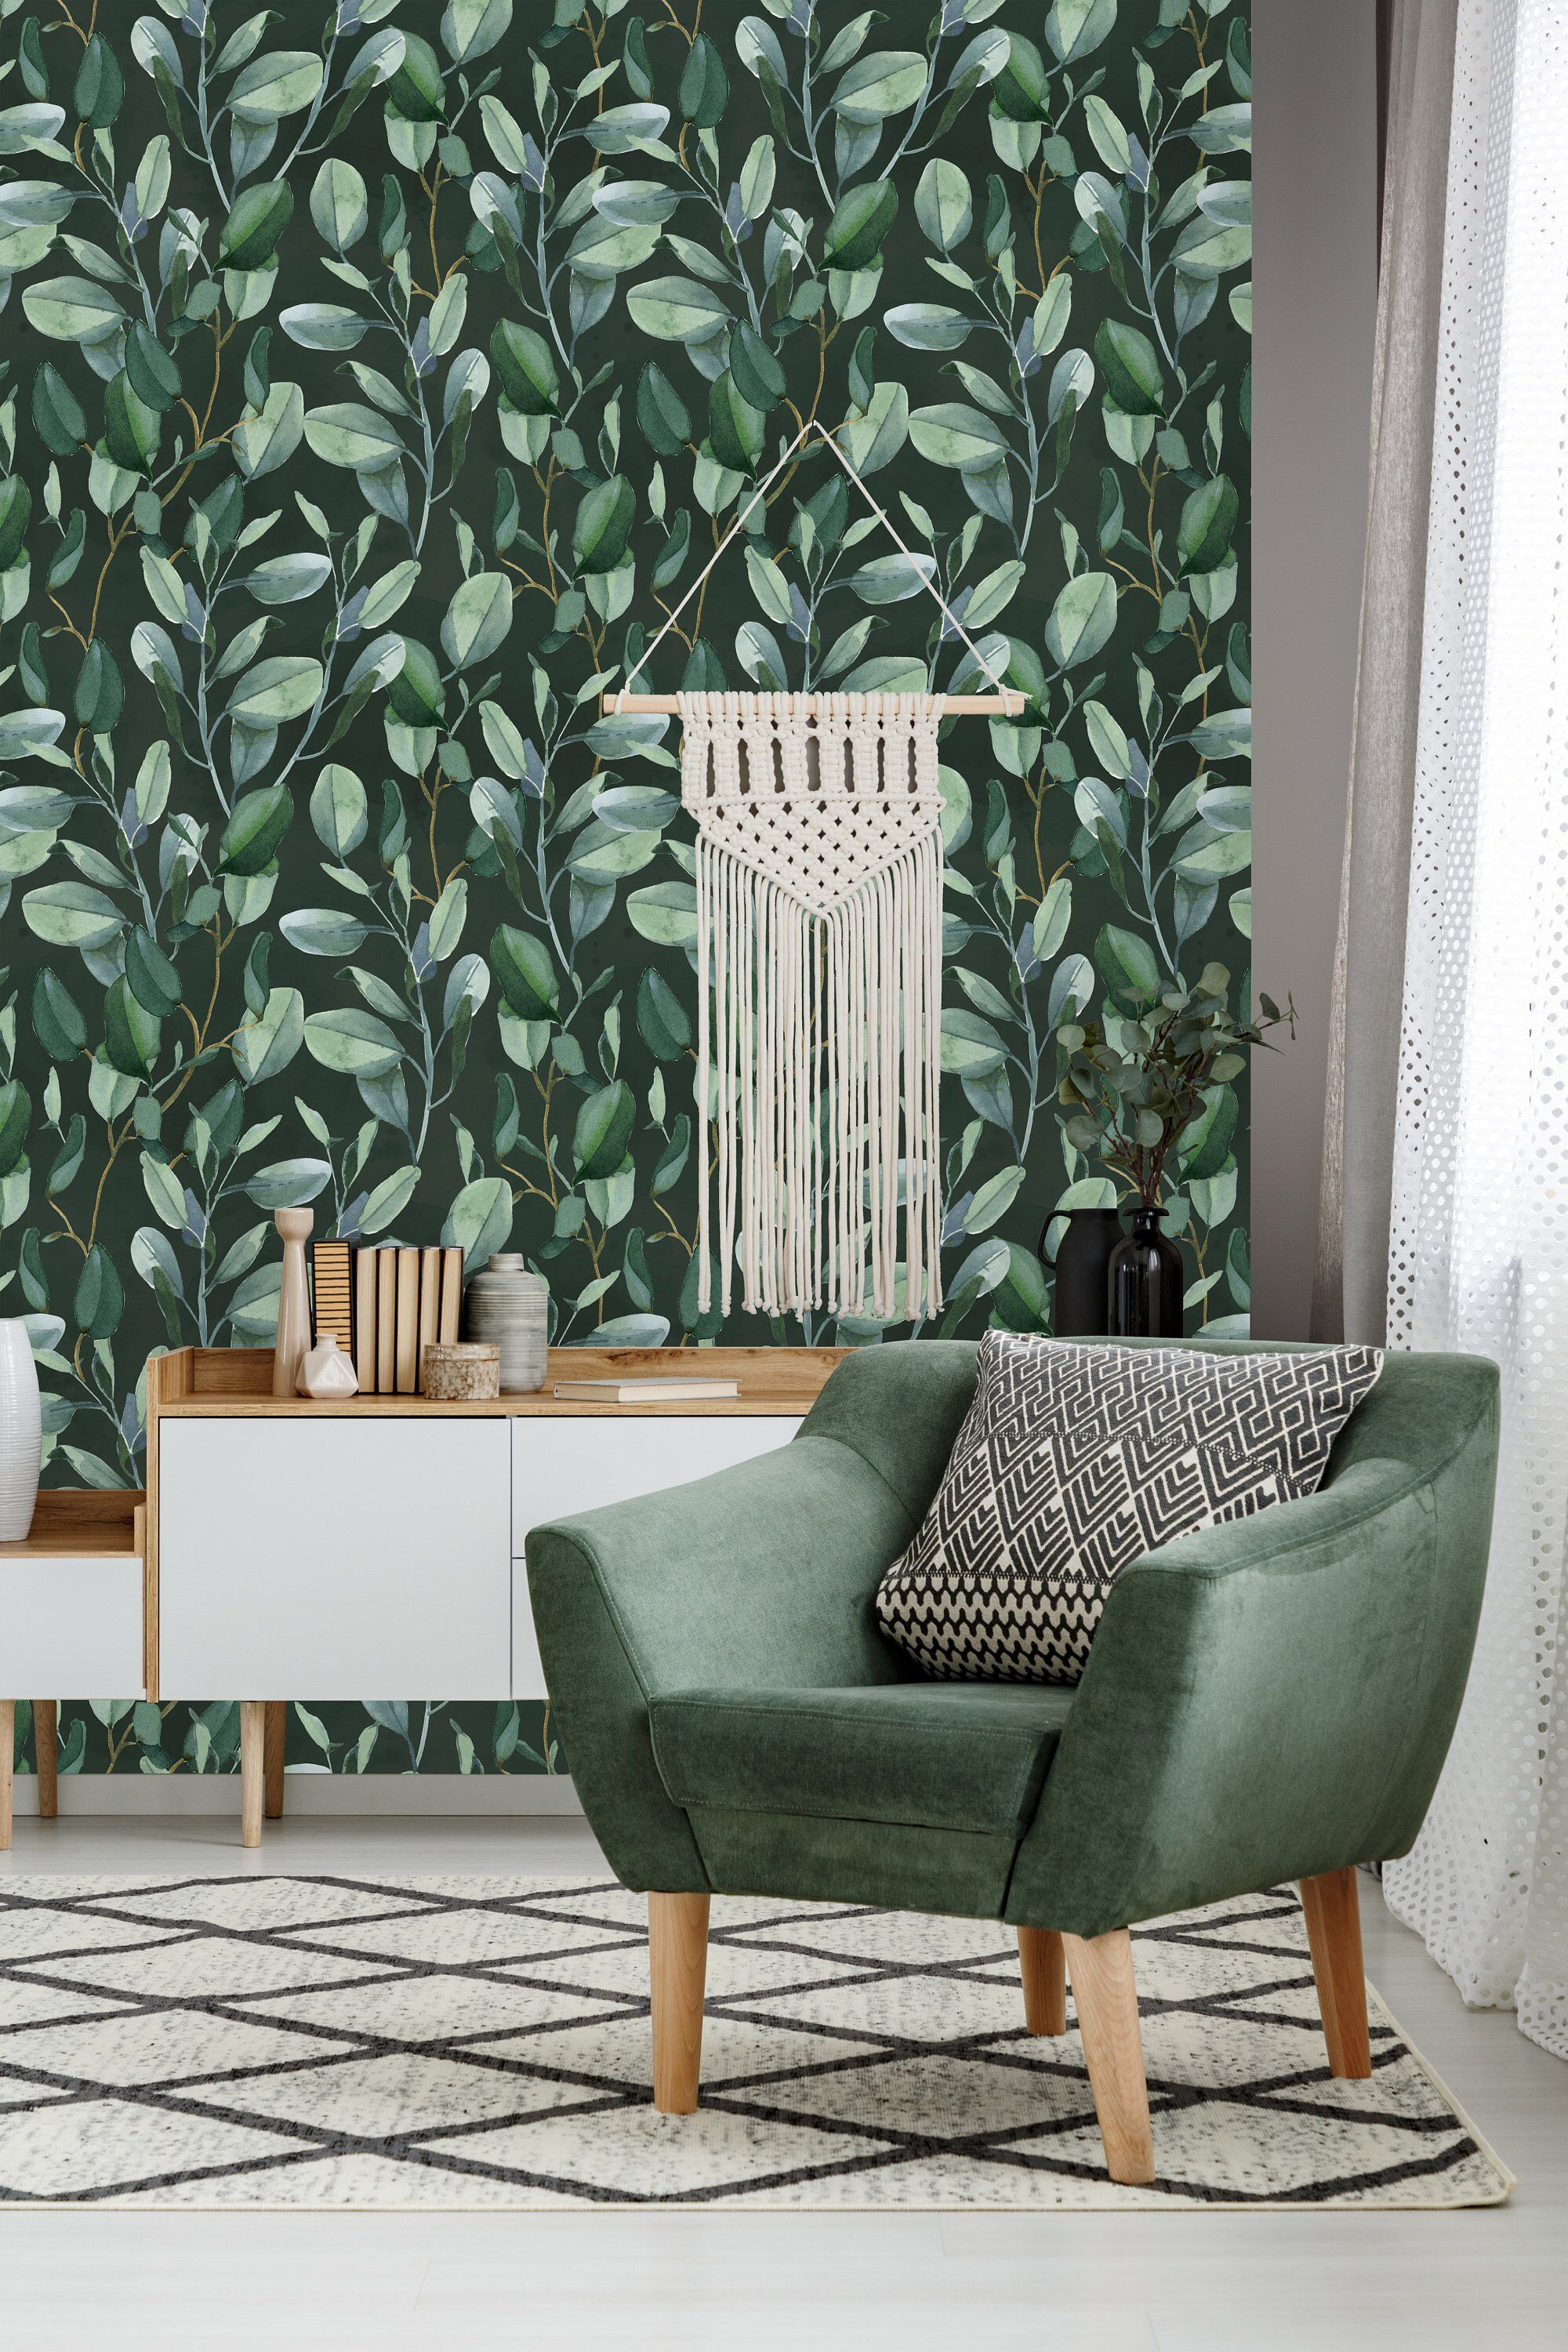 Green Eucalyptus Leaves Removable Wallpaper Peel And Stick Etsy Self Adhesive Wallpaper Removable Wallpaper Wall Wallpaper